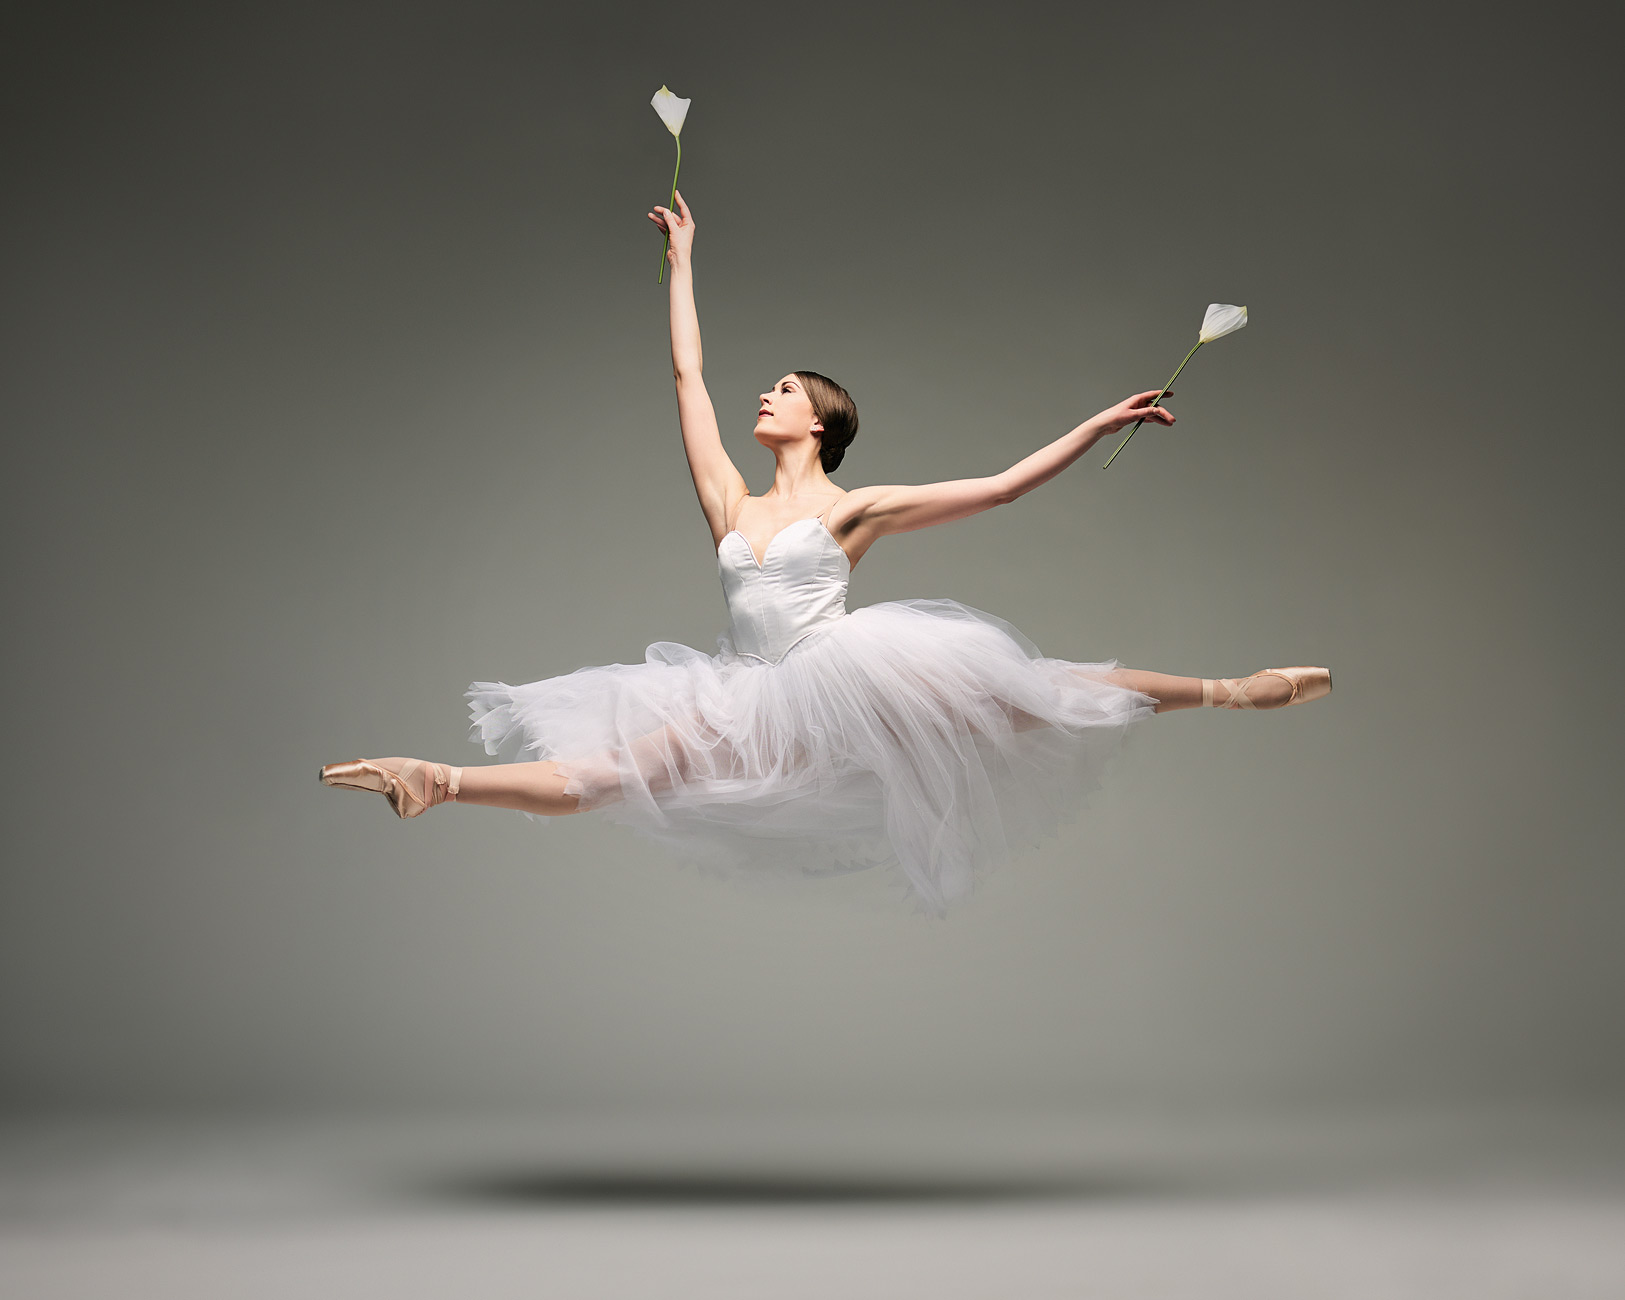 Saint Louis ballet marketing image for Giselle in 2017.